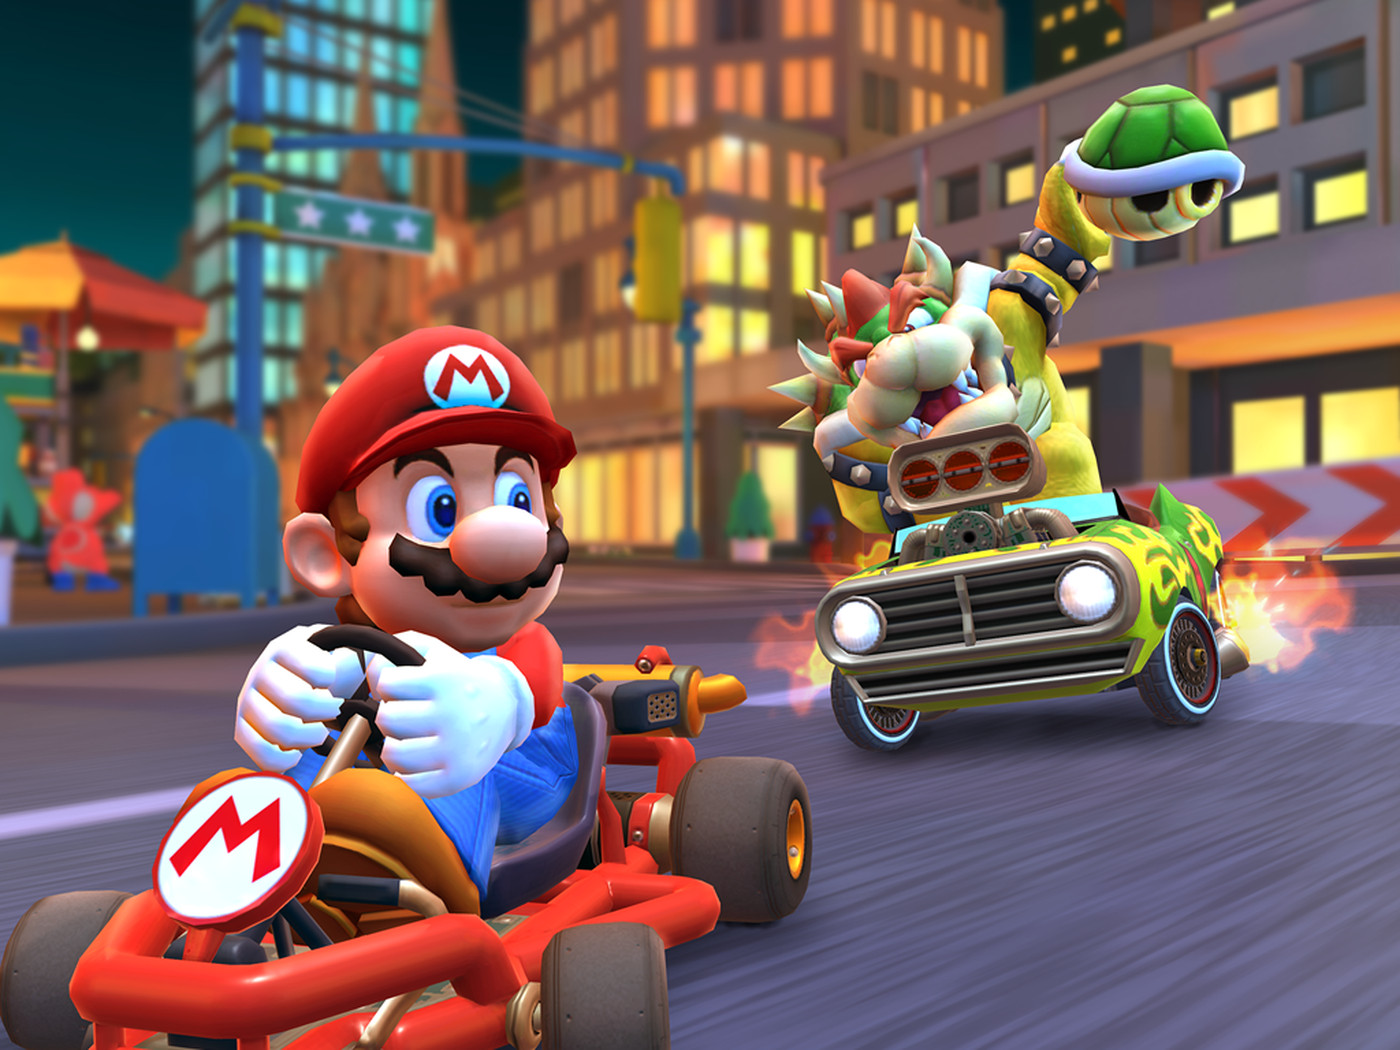 Roblox Best Selling Game Most Downloaded Iphone Games Mario Kart Tour Tops Call Of Duty And Fortnite The Verge